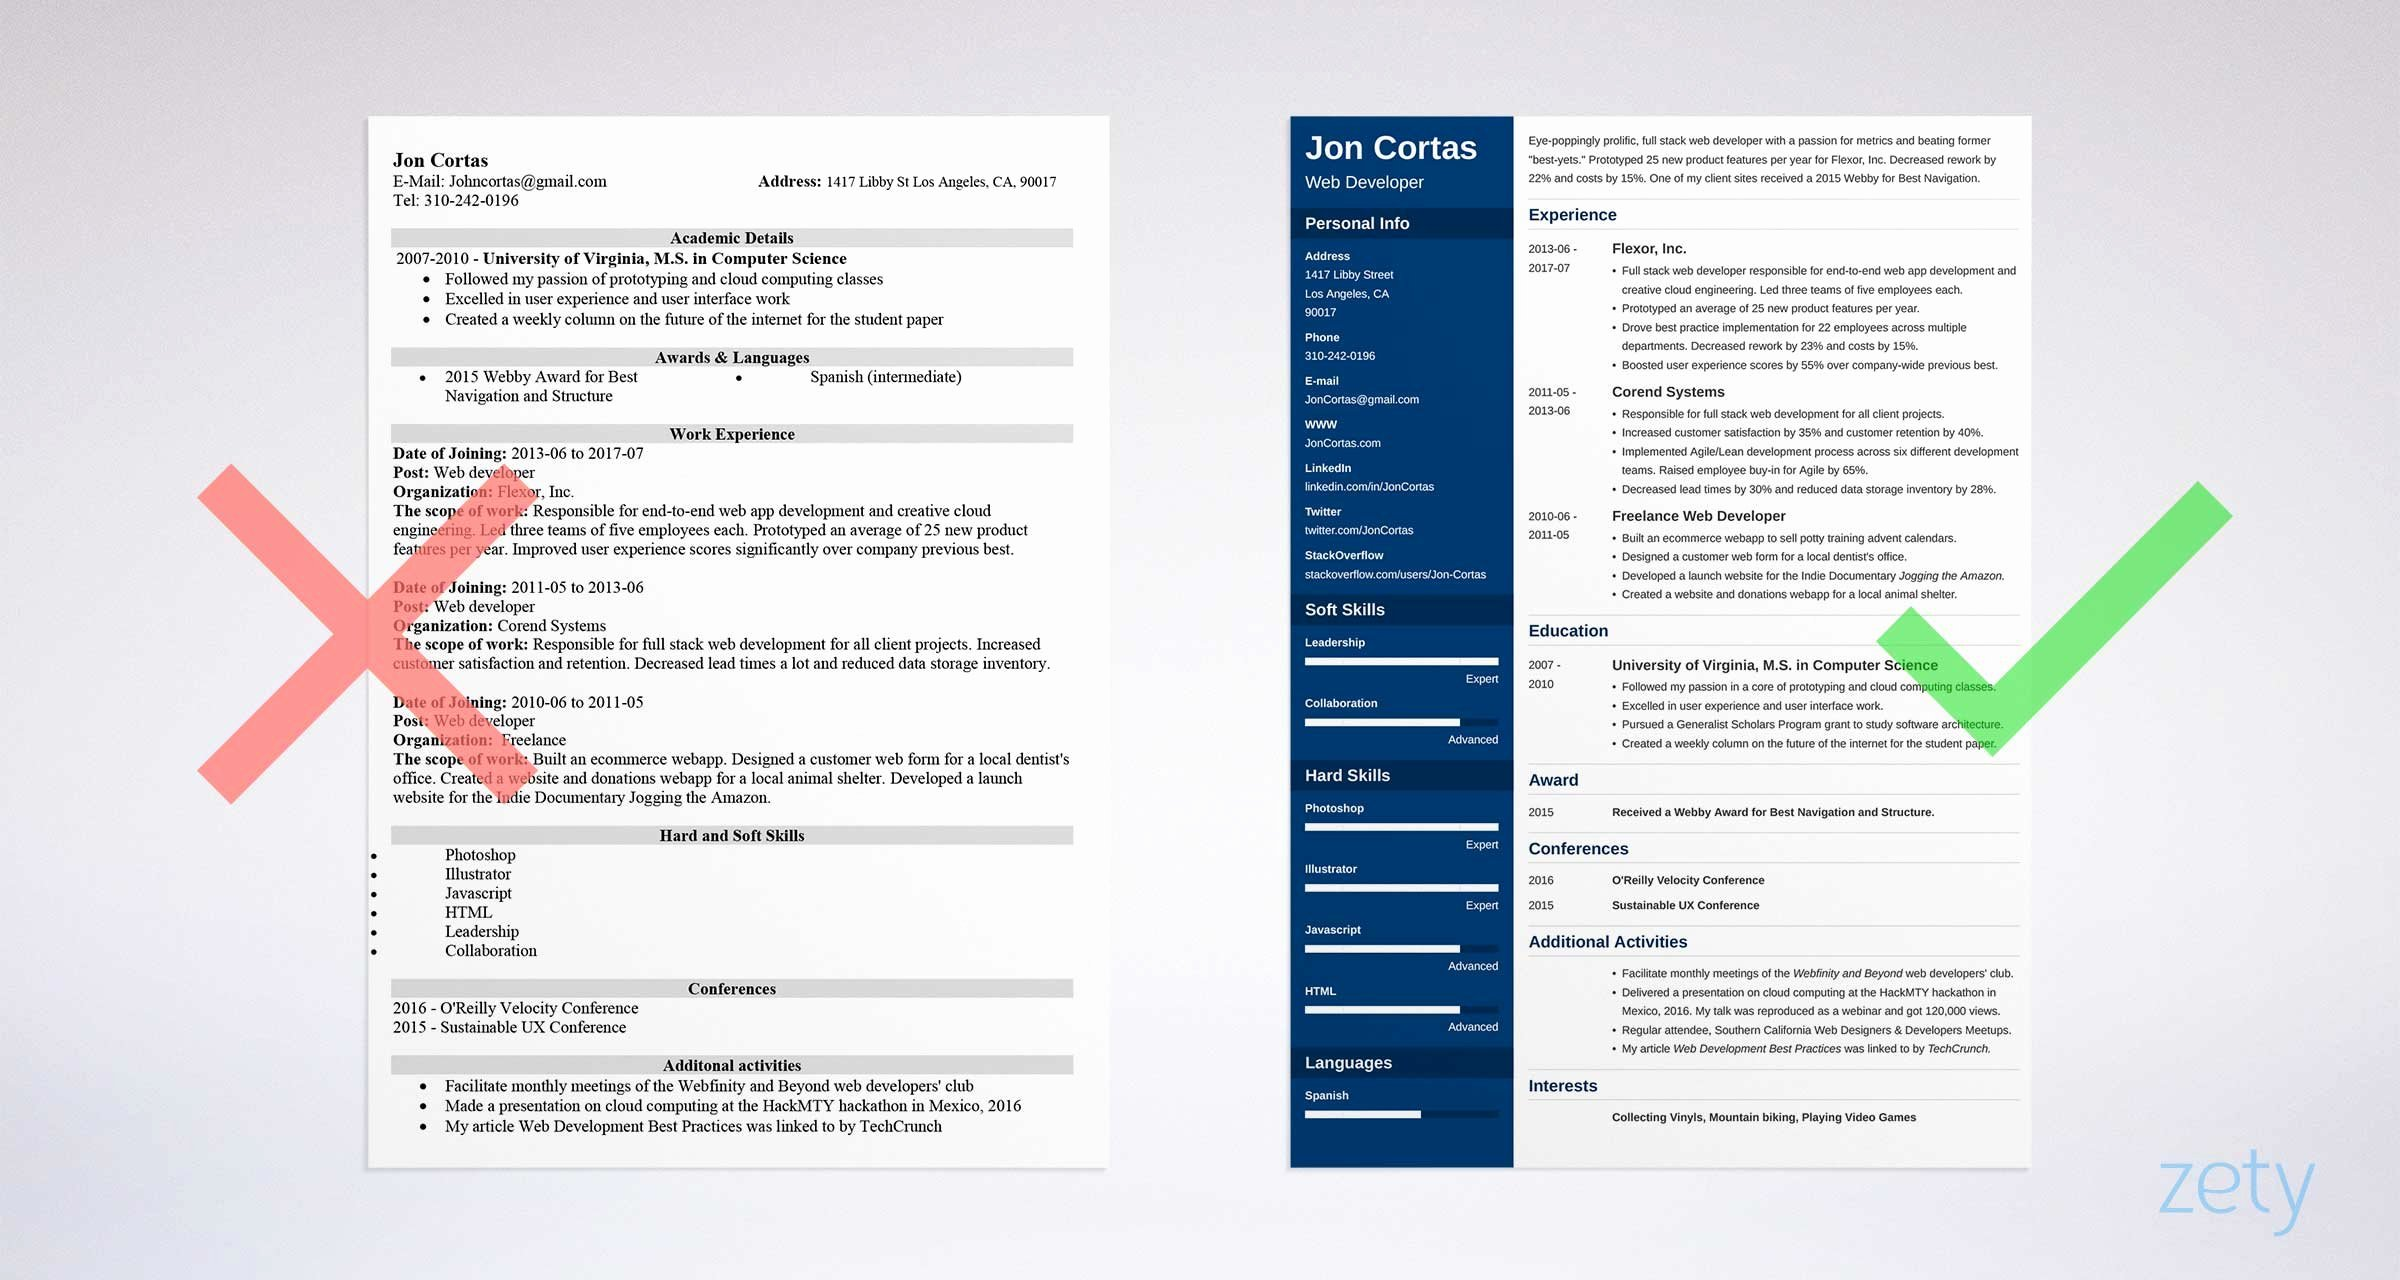 Best Resume format Luxury 15 Resume Templates for Word Free to Download